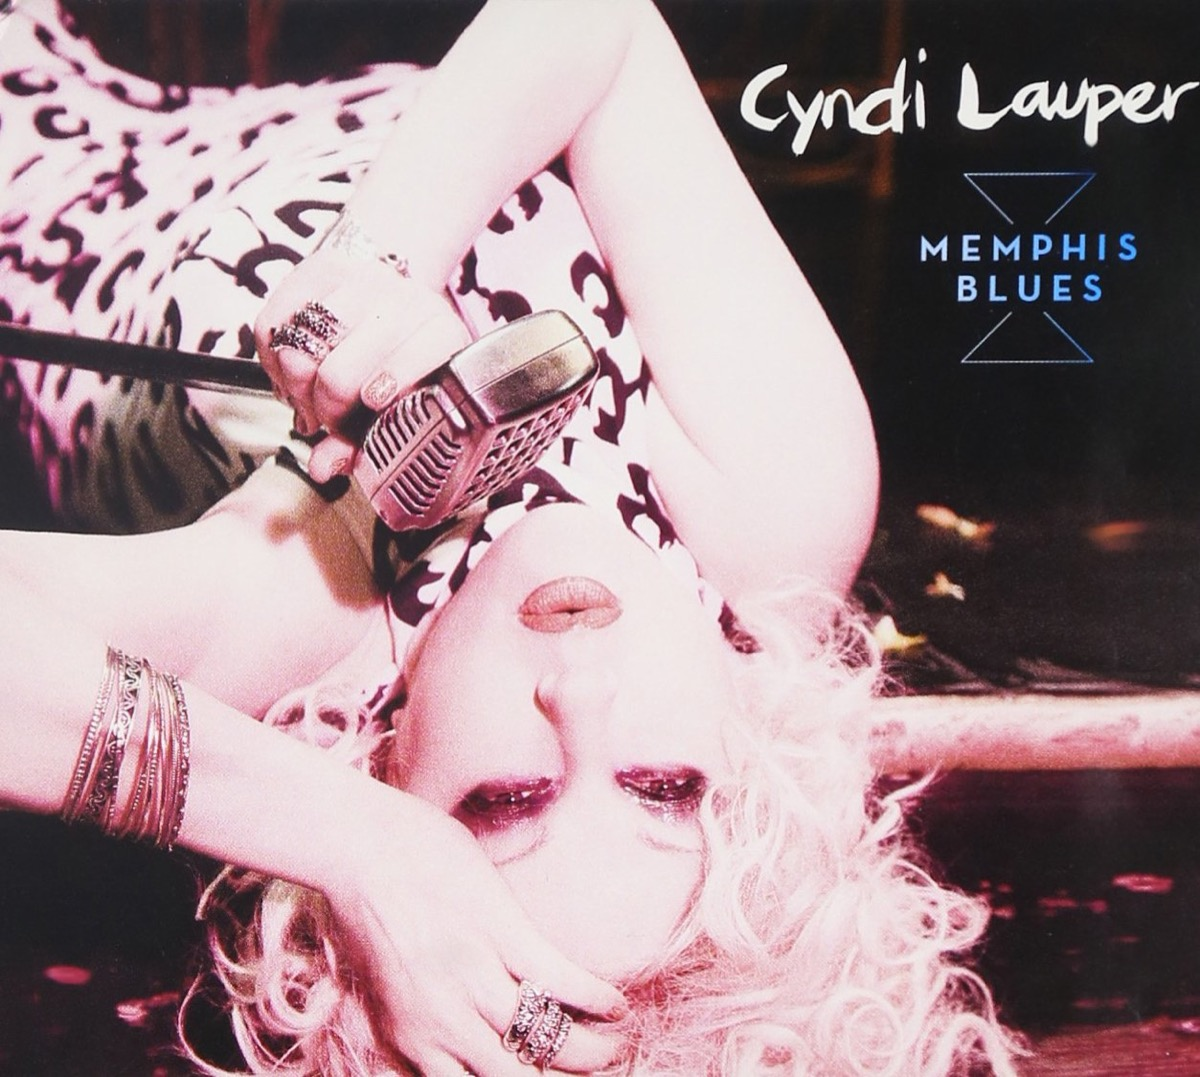 """The album cover of """"Memphis Blues"""" by Cyndi Lauper"""